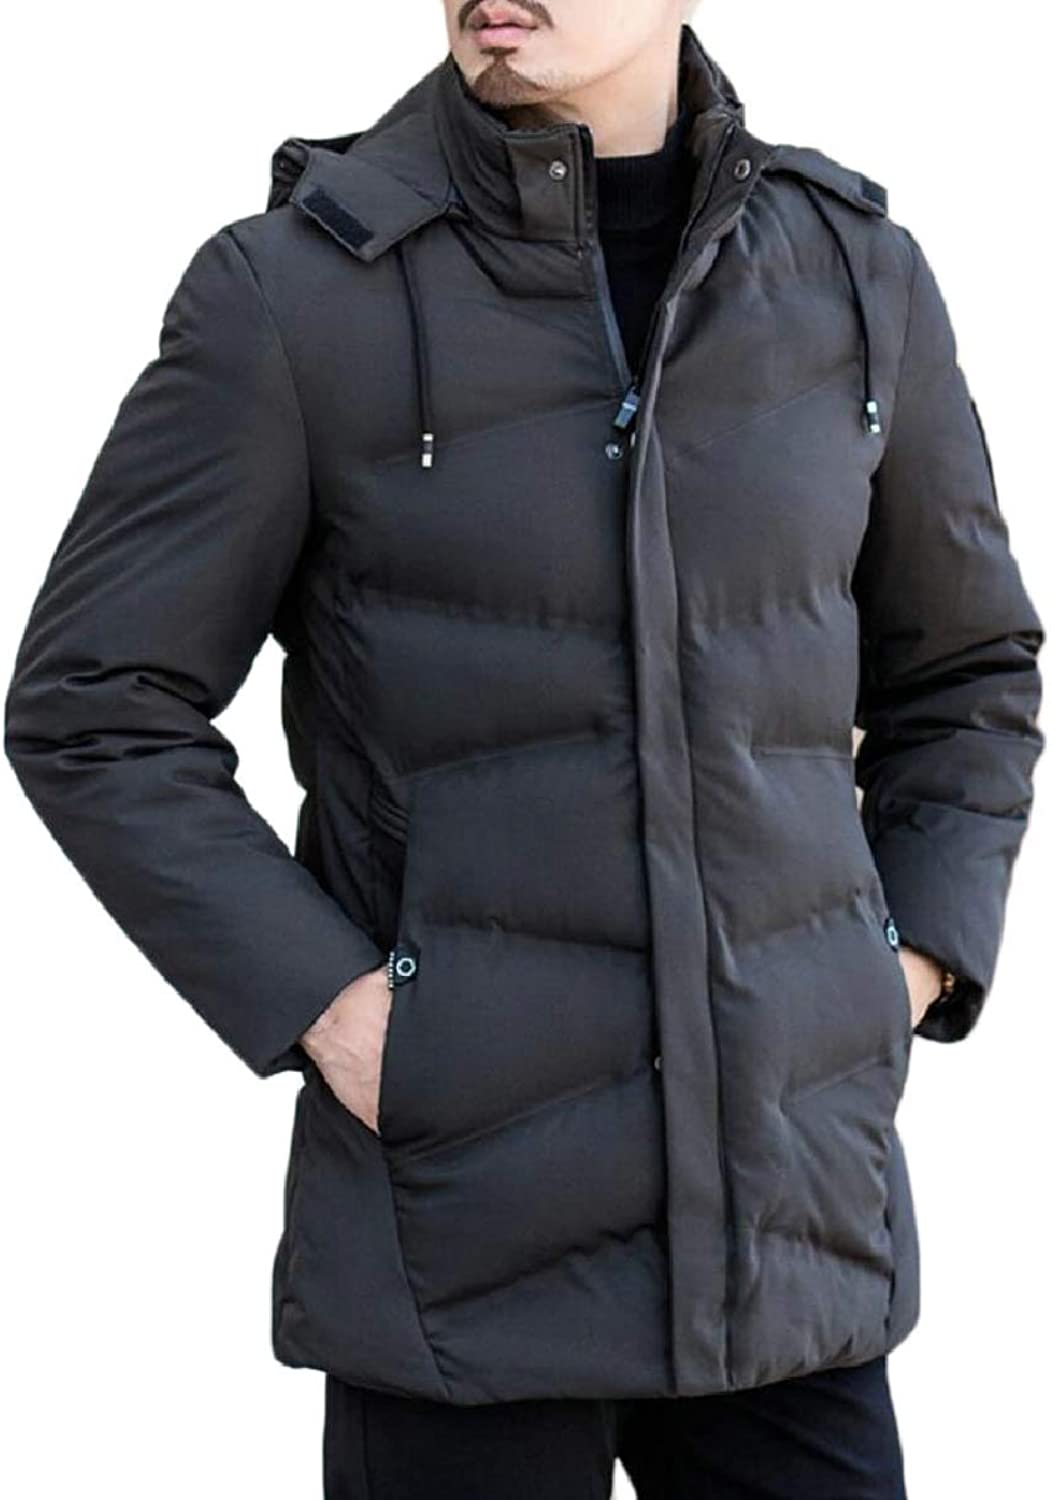 ee070798 ZXFHZS-CA Mens Front-Zip Padded Mid Mid Mid Long Big-Tall Thicken Outwear  Down Jacket Coat 071bef